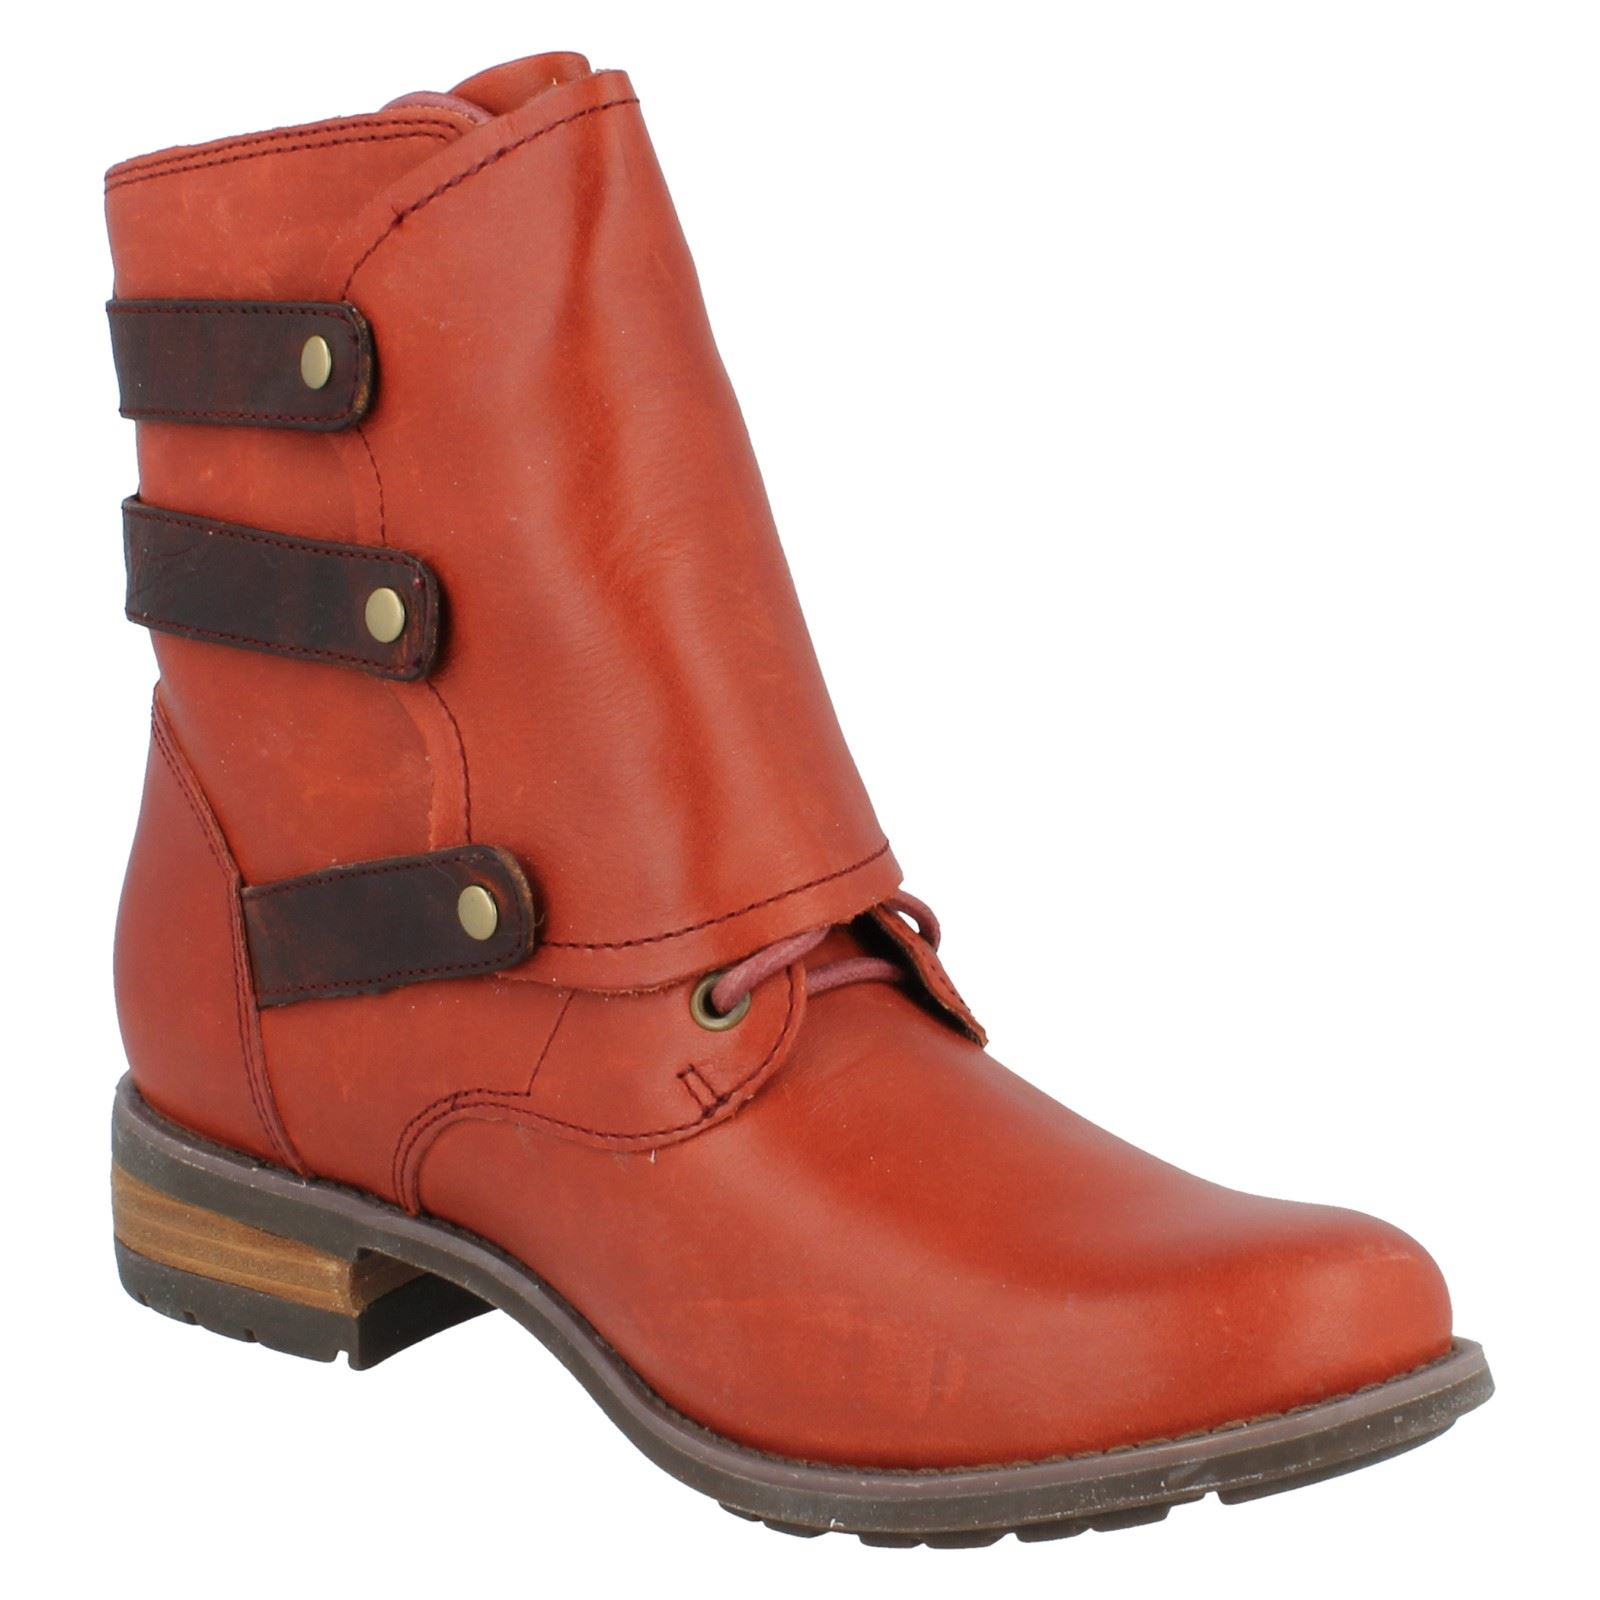 Awesome Clothes Shoes Amp Accessories Gt Women39s Shoes Gt Boots